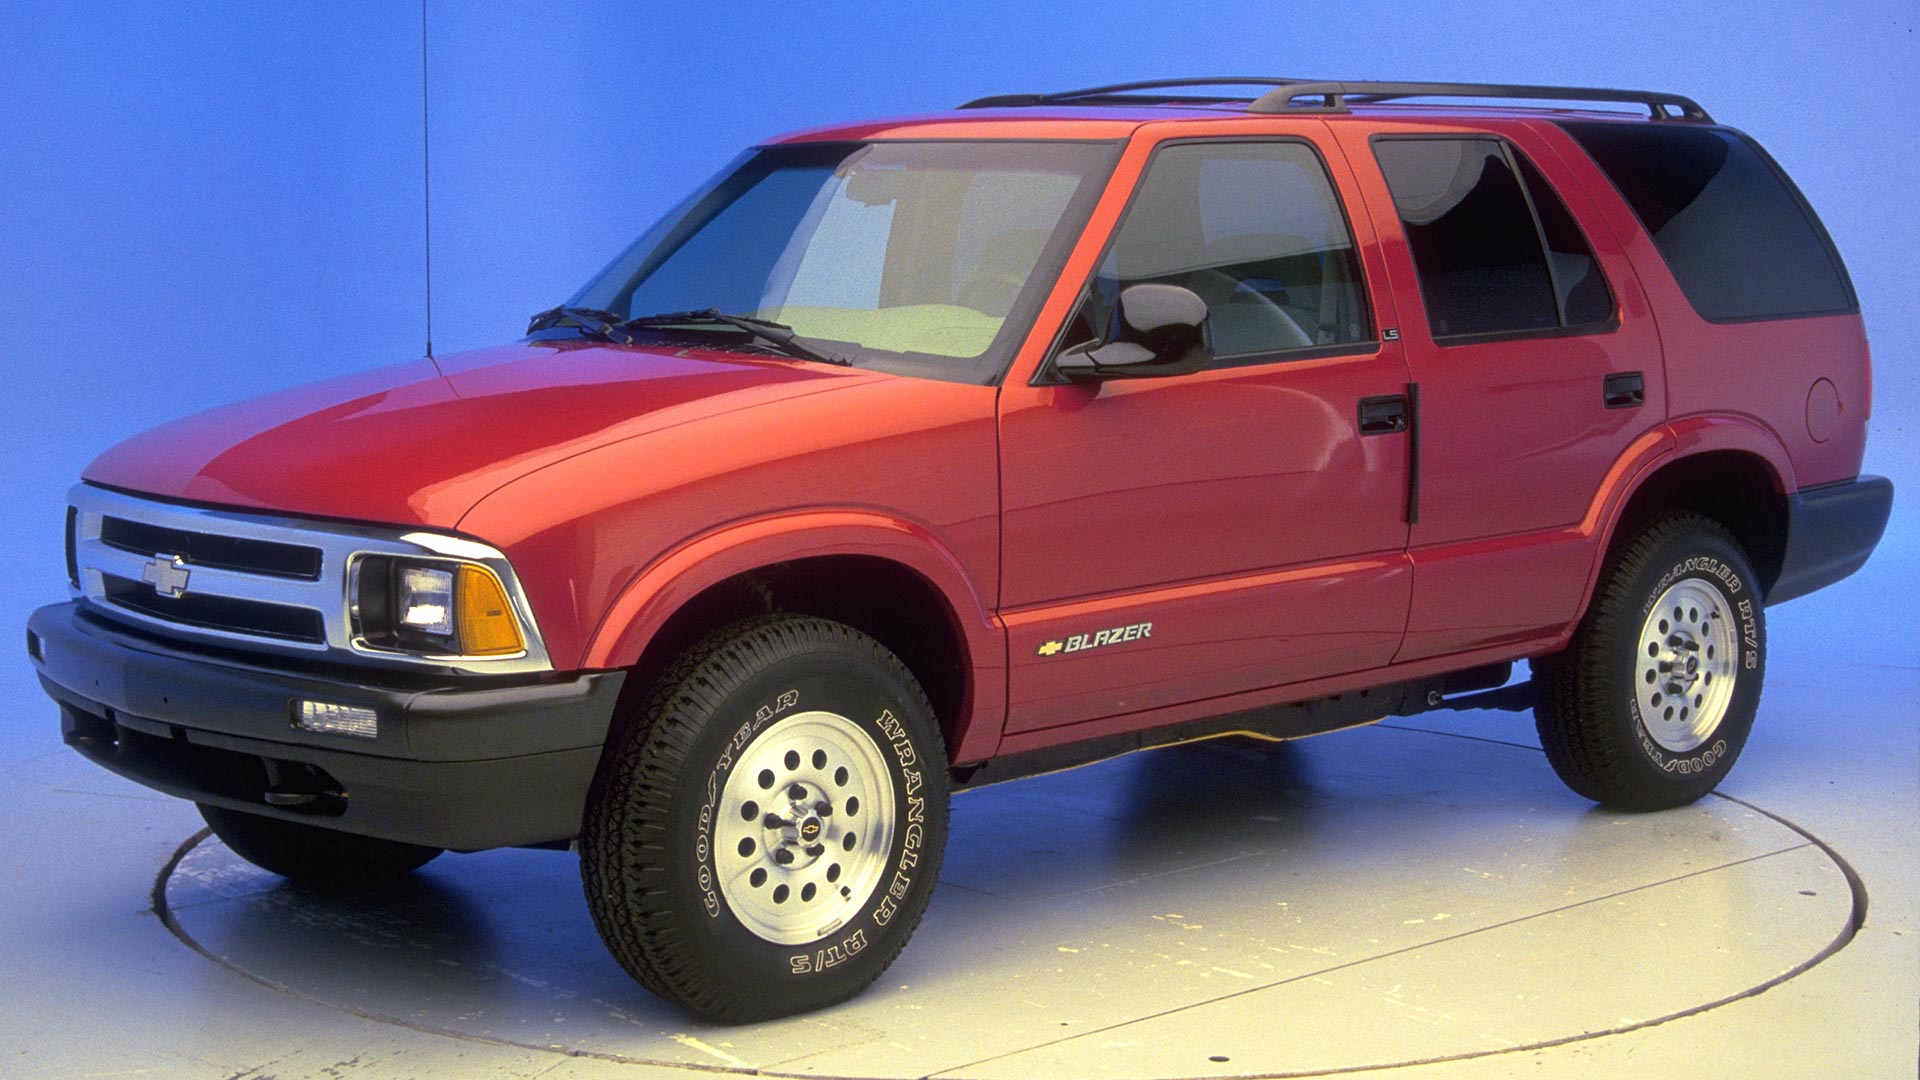 hight resolution of 1999 chevrolet blazer 4 door suv